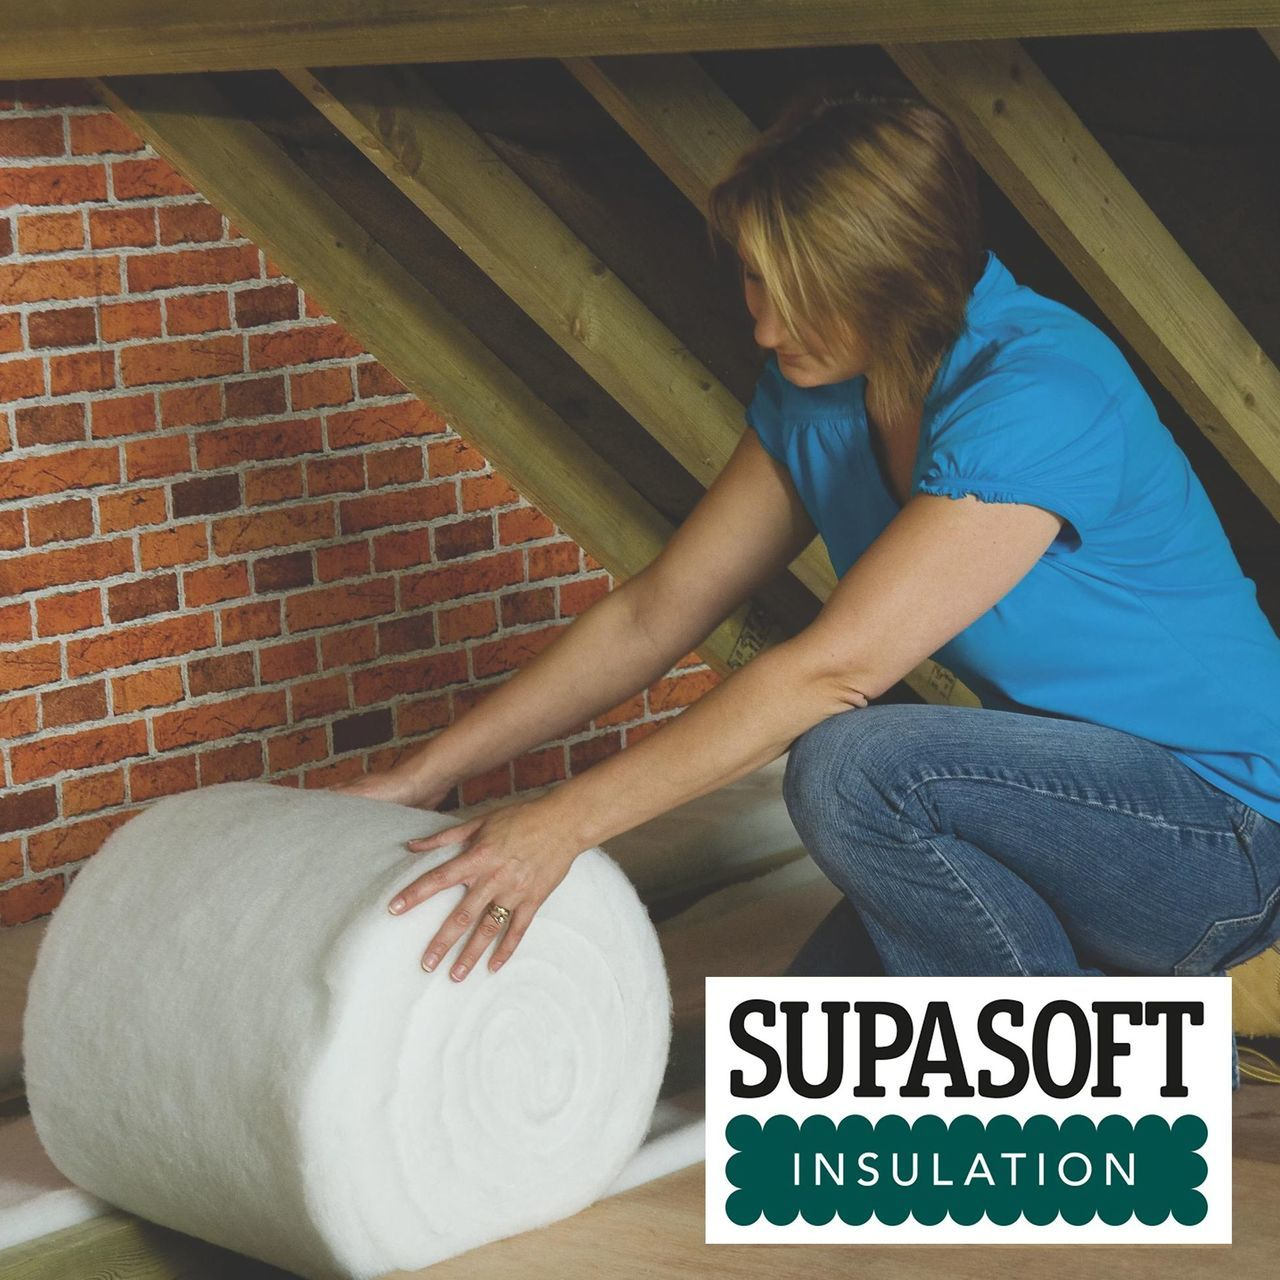 SupaSoft eco insulation